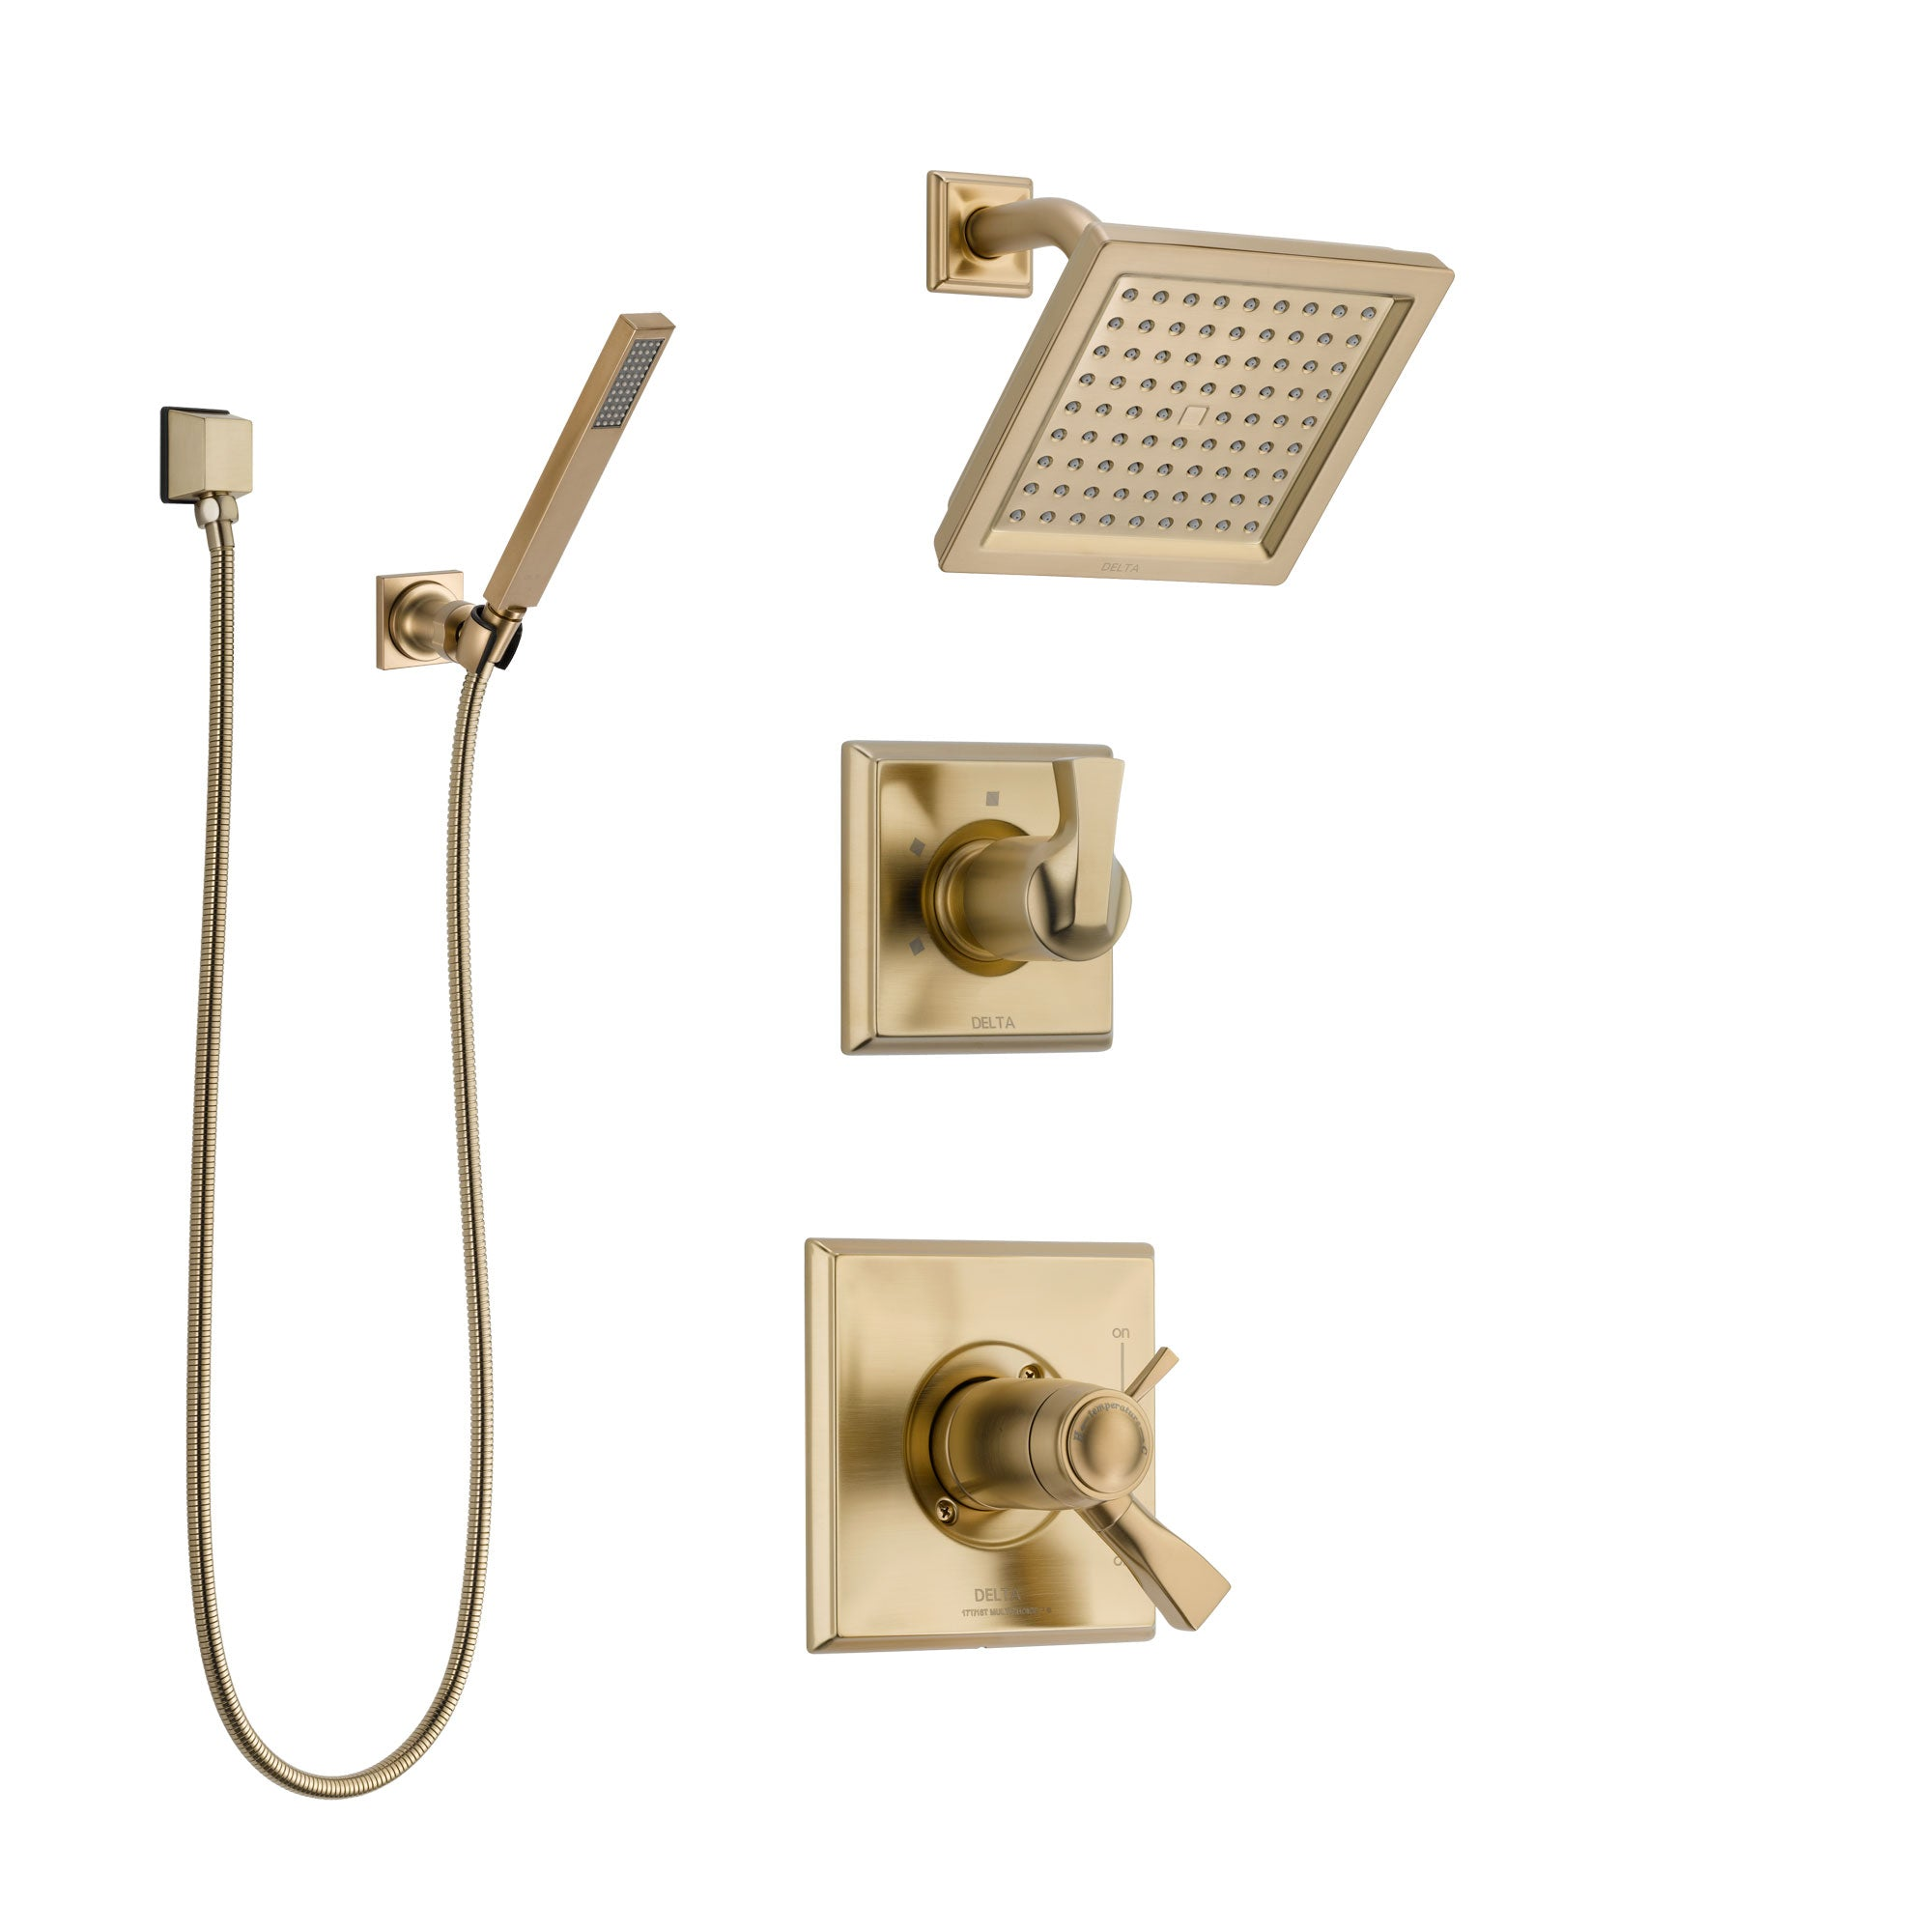 Delta Dryden Champagne Bronze Shower System with Dual Thermostatic Control Handle, Diverter, Showerhead, and Hand Shower SS17T2511CZ3